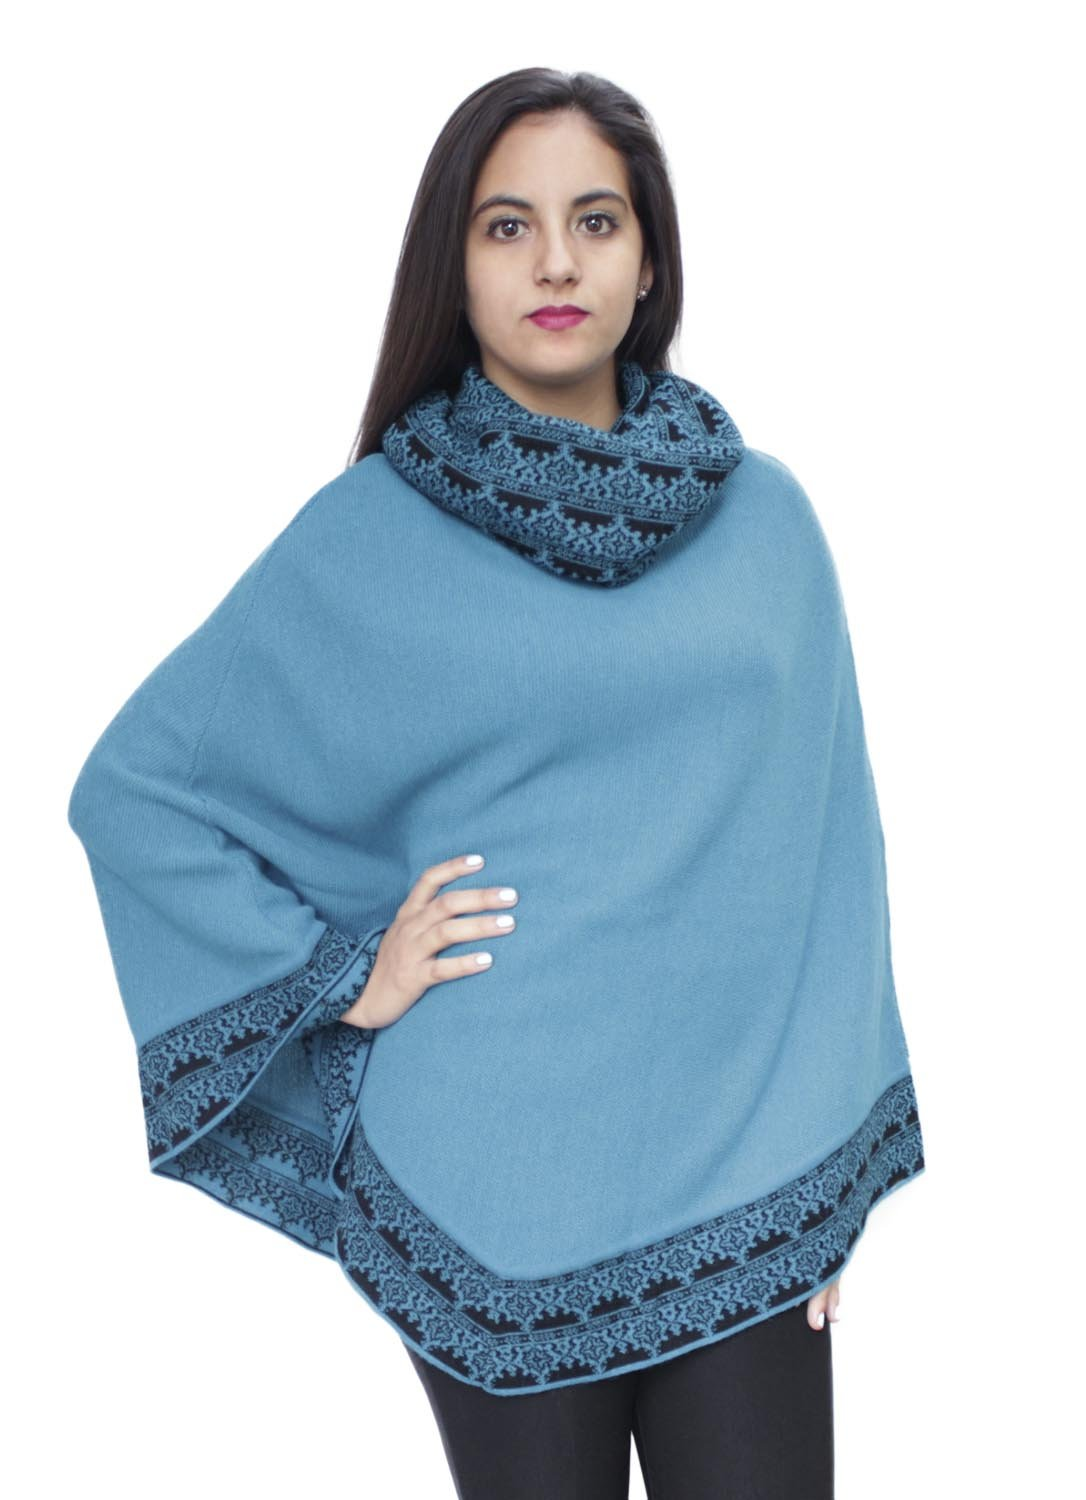 Women's Superfine 100% Baby Alpaca Wool Handmade Knit Premium Poncho One Size Extremely Soft And Warm (Turquoise)